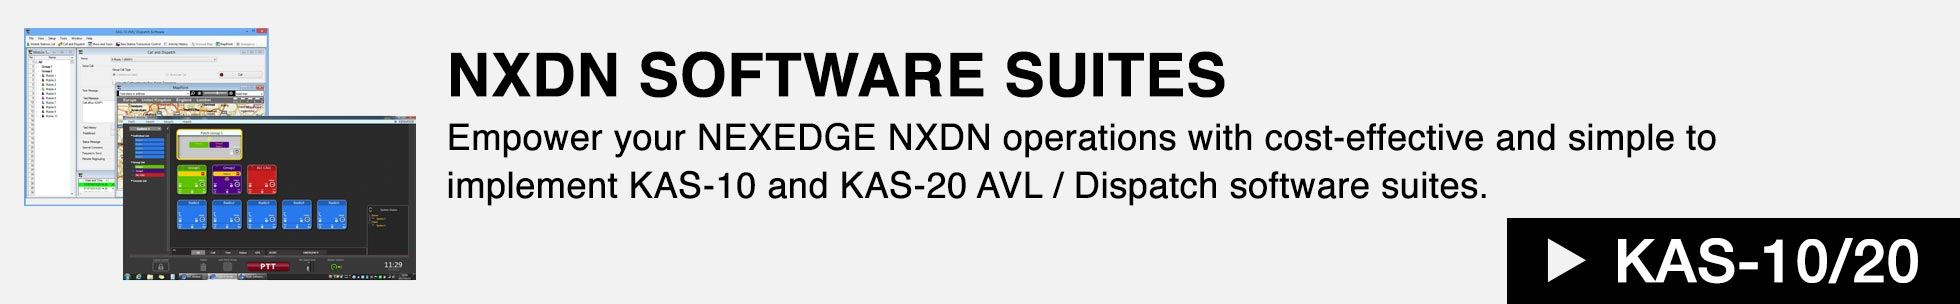 NXDN Software Suites - KAS-10/20